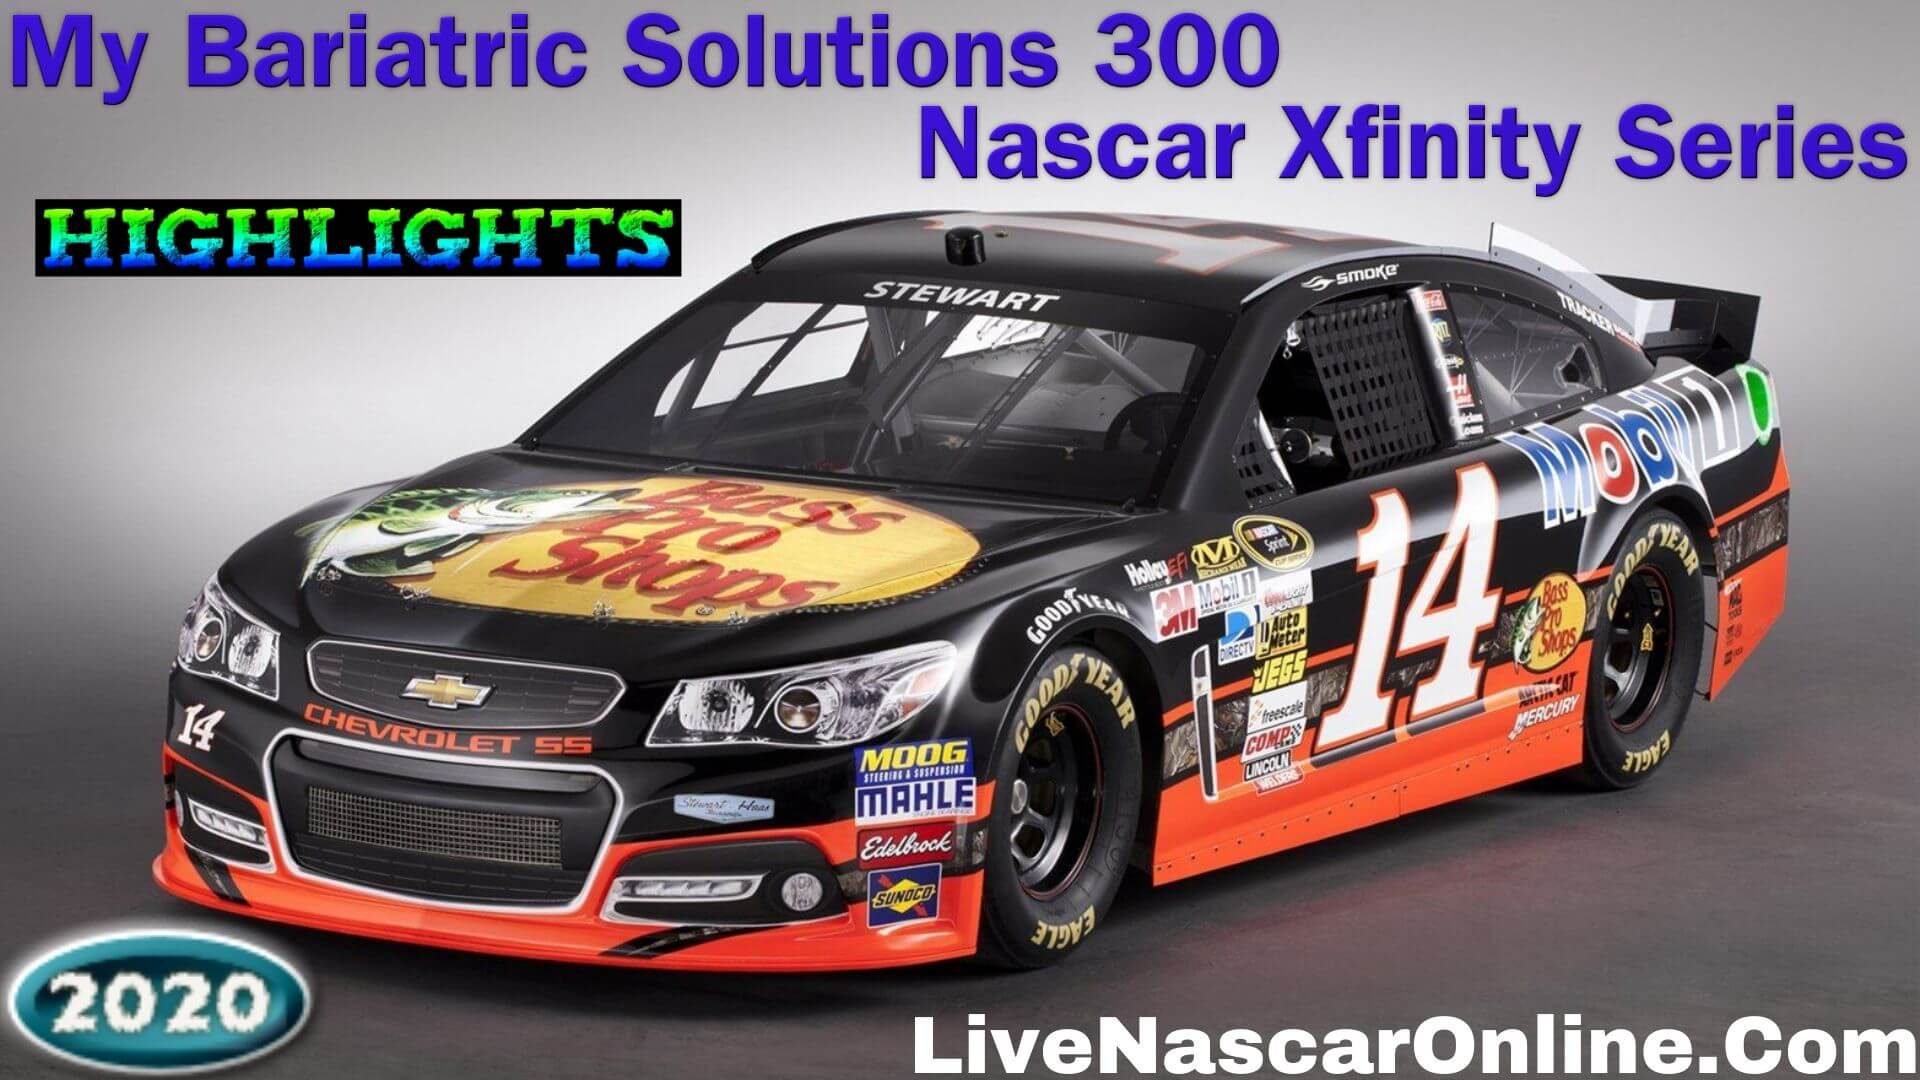 My Bariatric Solutions 300 Xfinity Series Highlights 2020